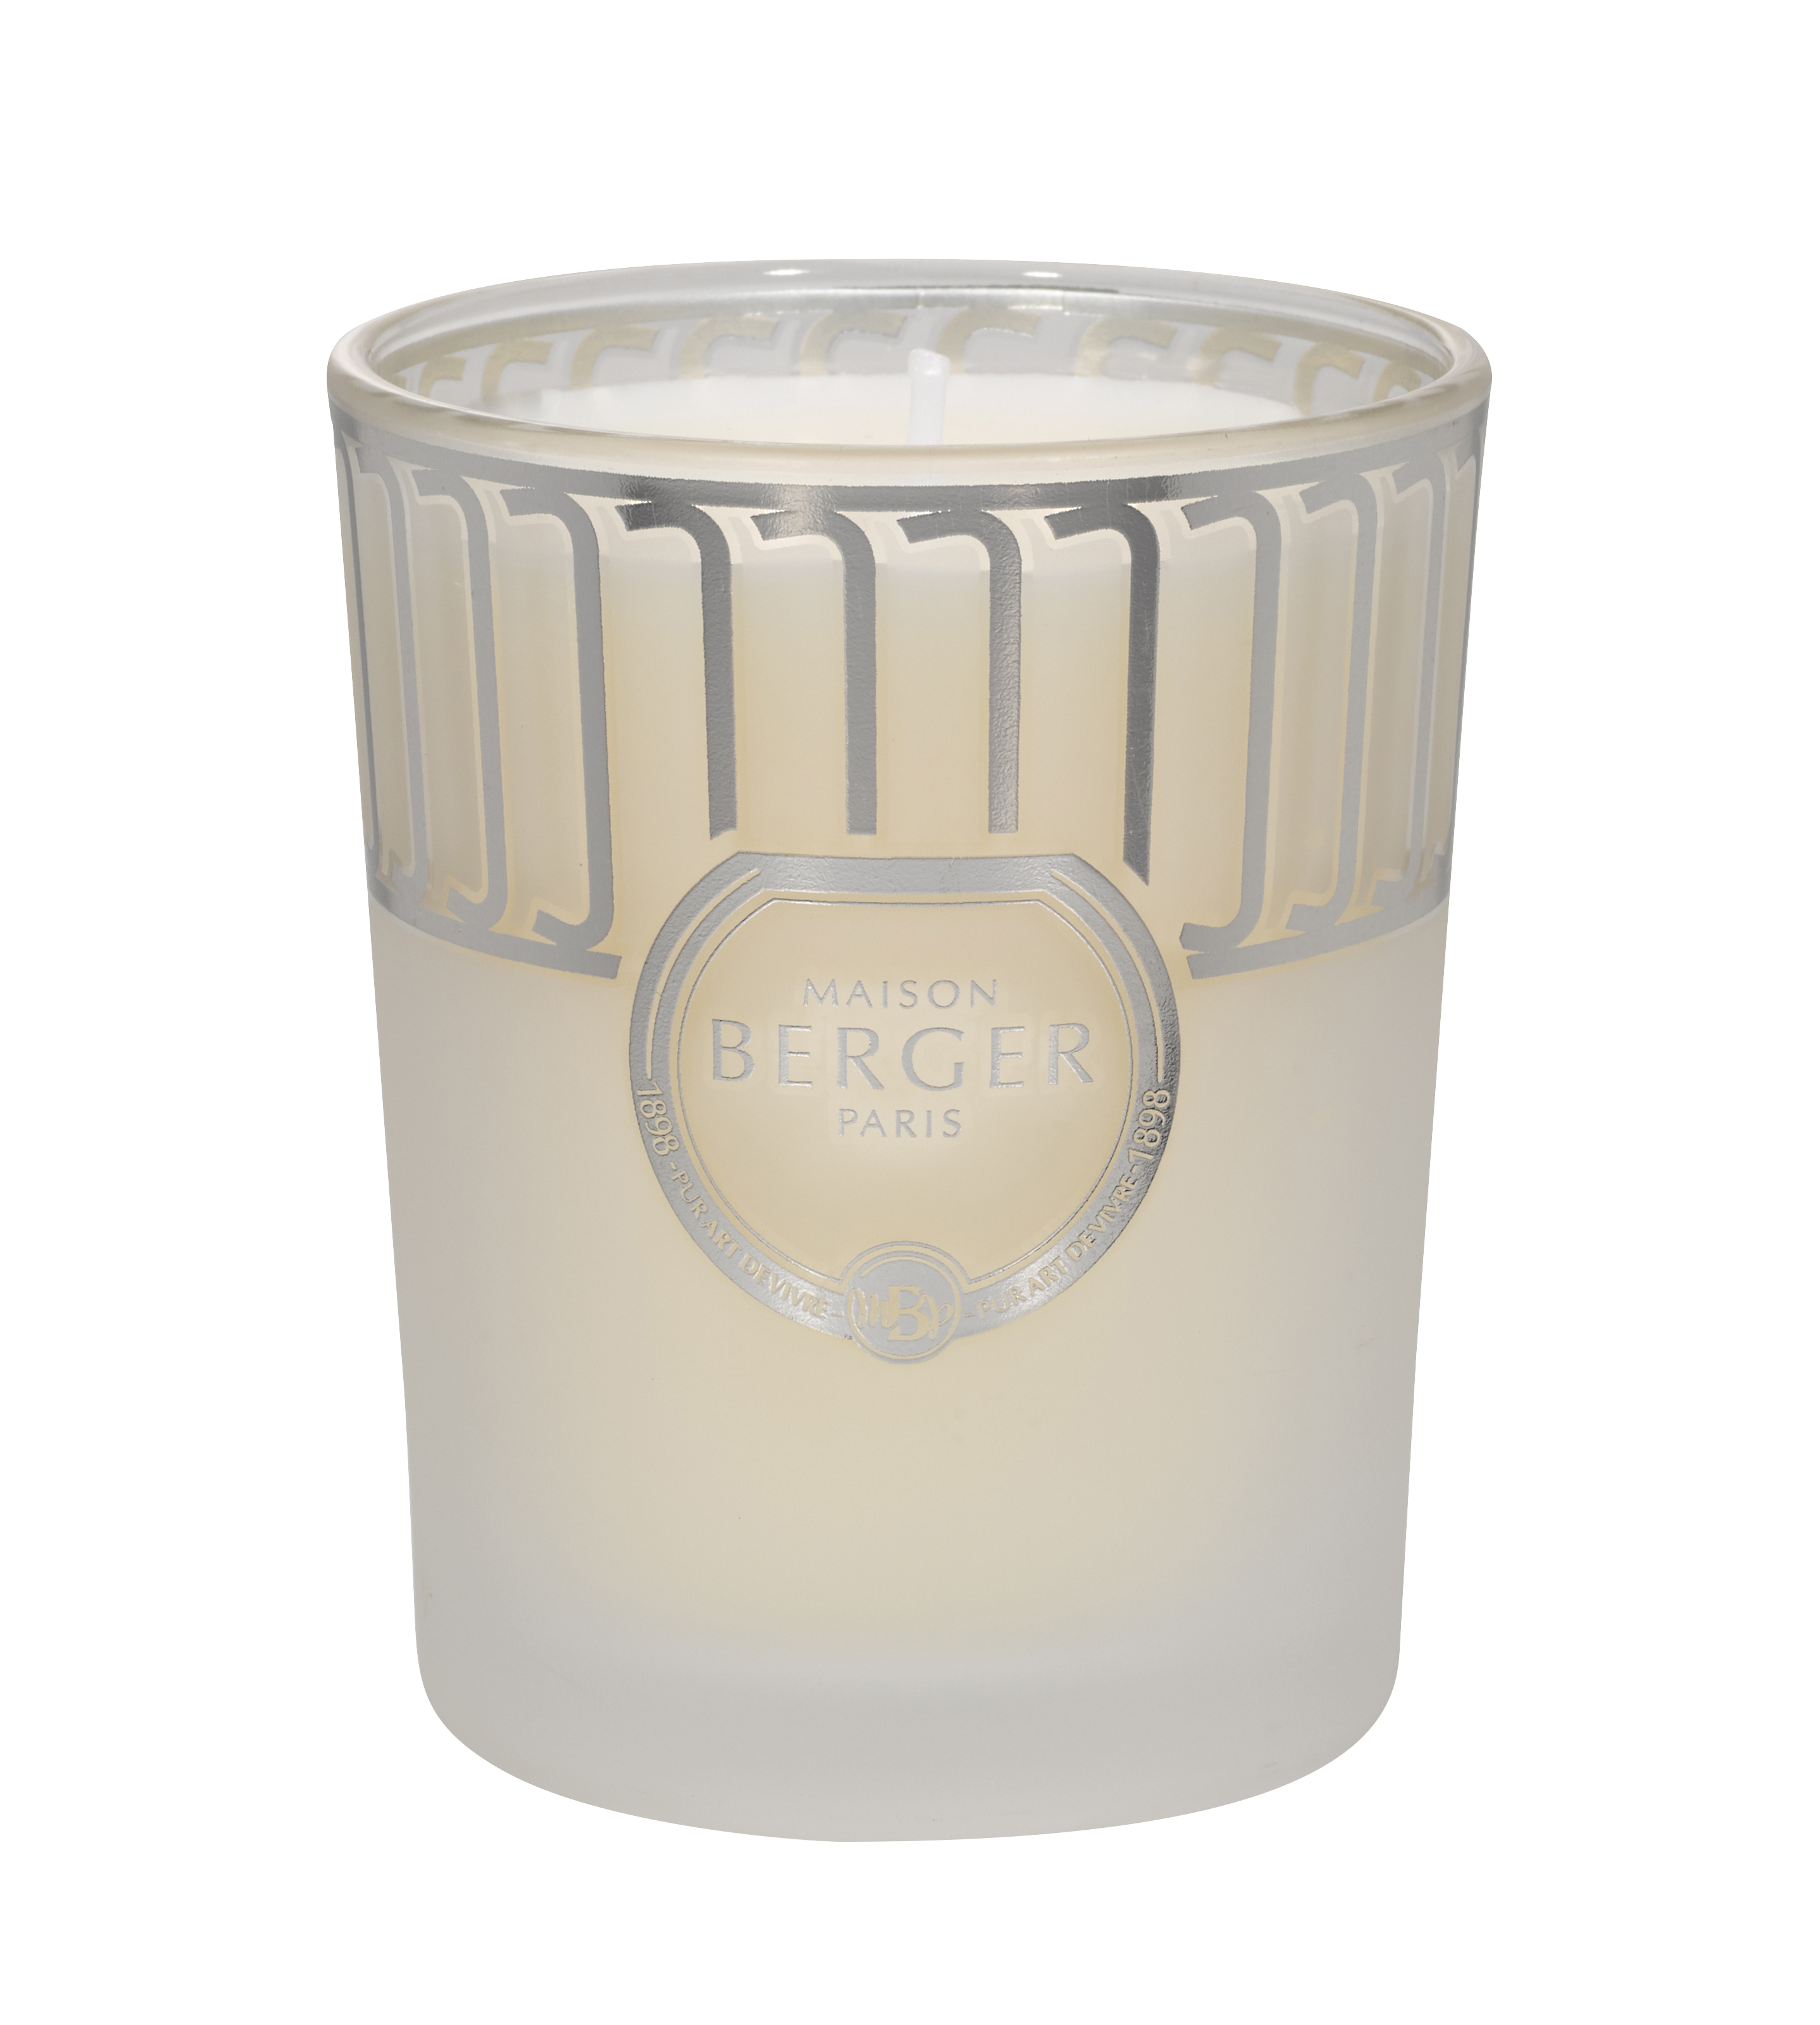 Maison Berger Frosted White Land Scented Candle